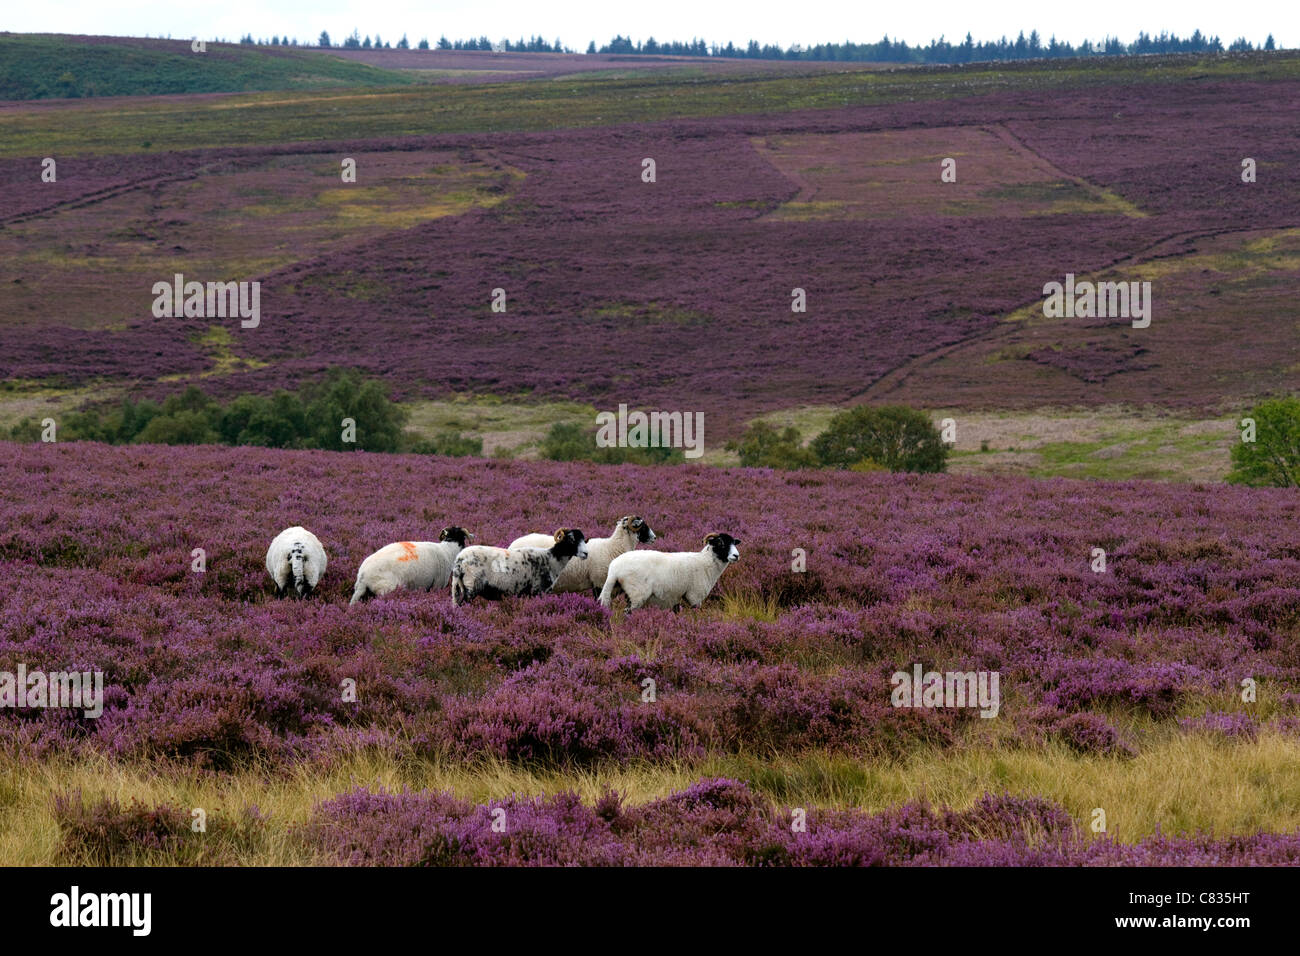 Hill sheep.Upland farming.hill farming.Agriculture.meat industry. - Stock Image